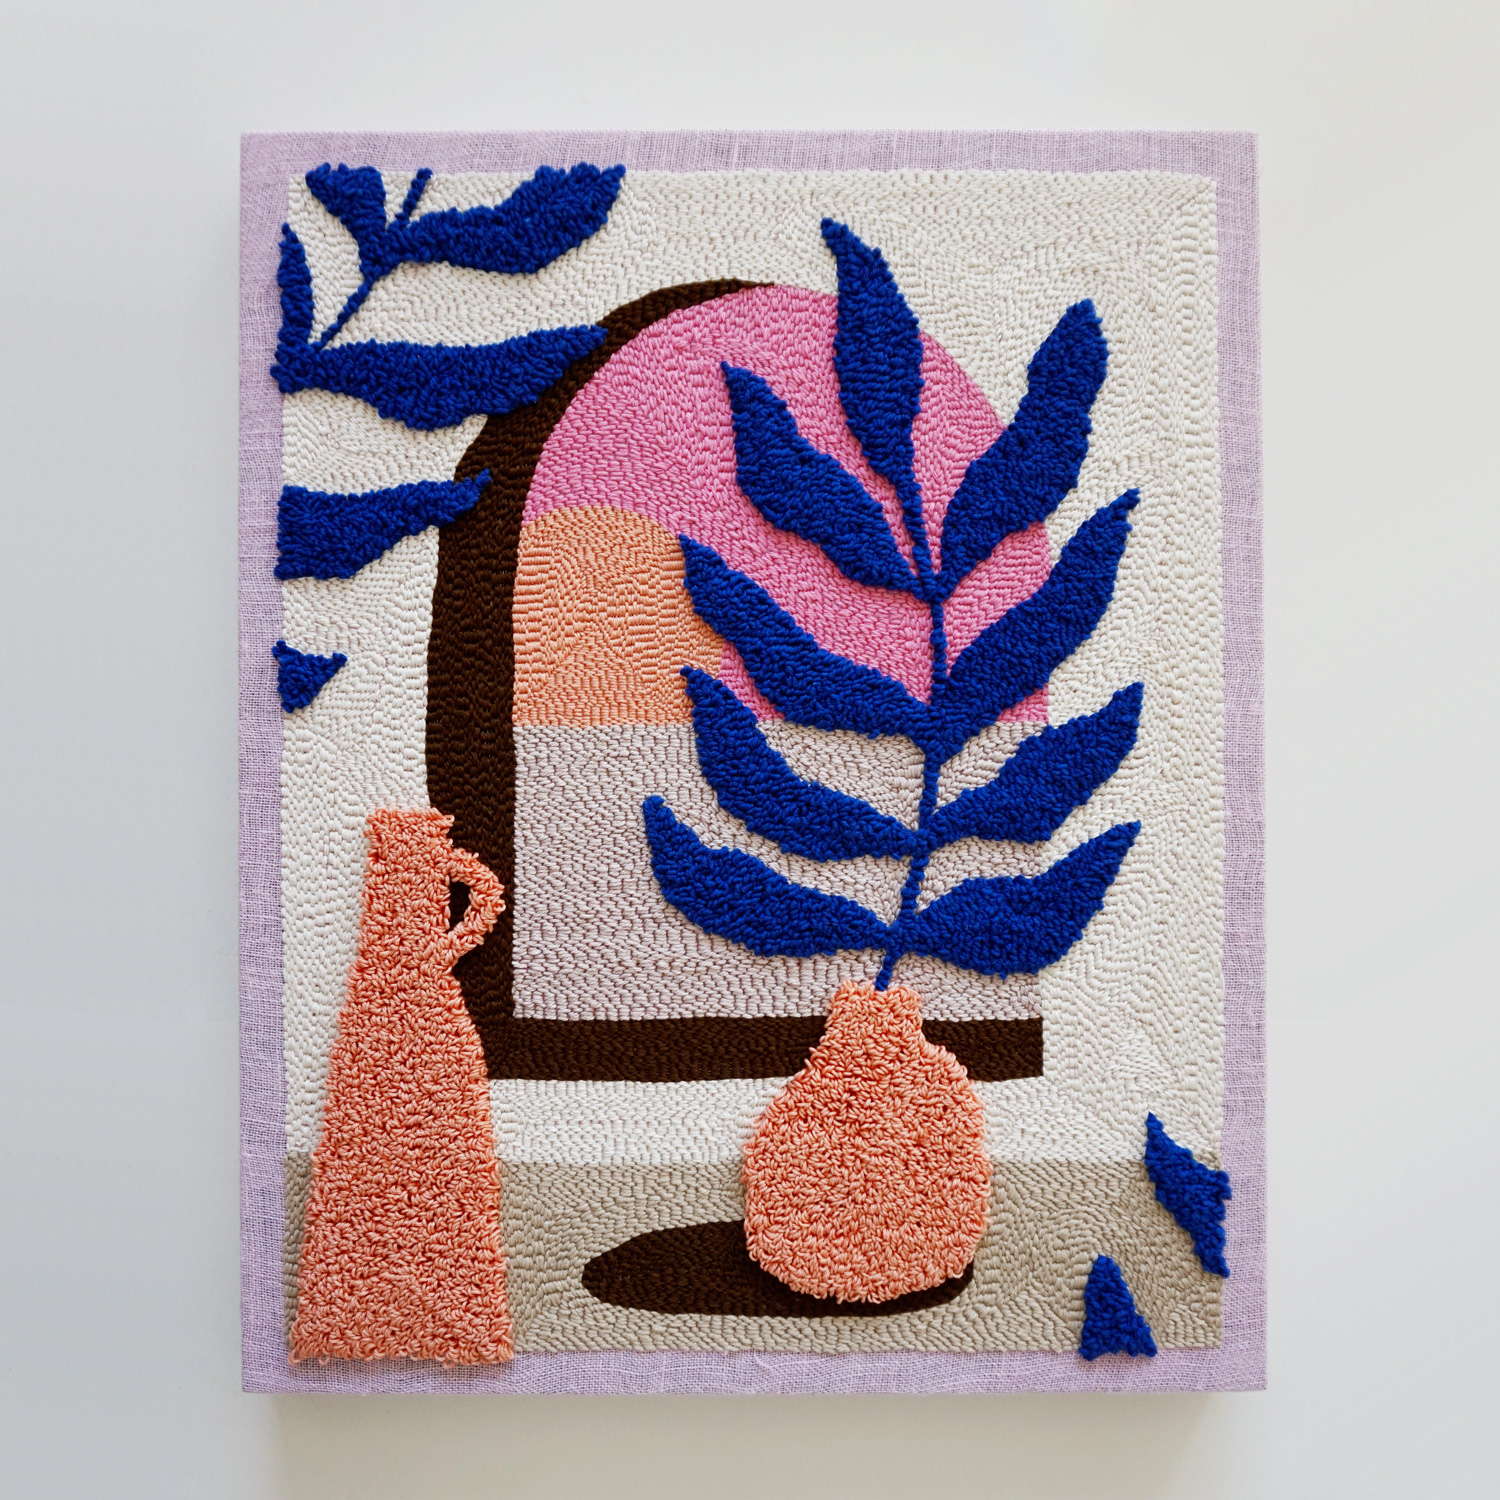 A dreamy and soft punch needle art work, featuring a mediterranean scene looking out into a sunset over the ocean.